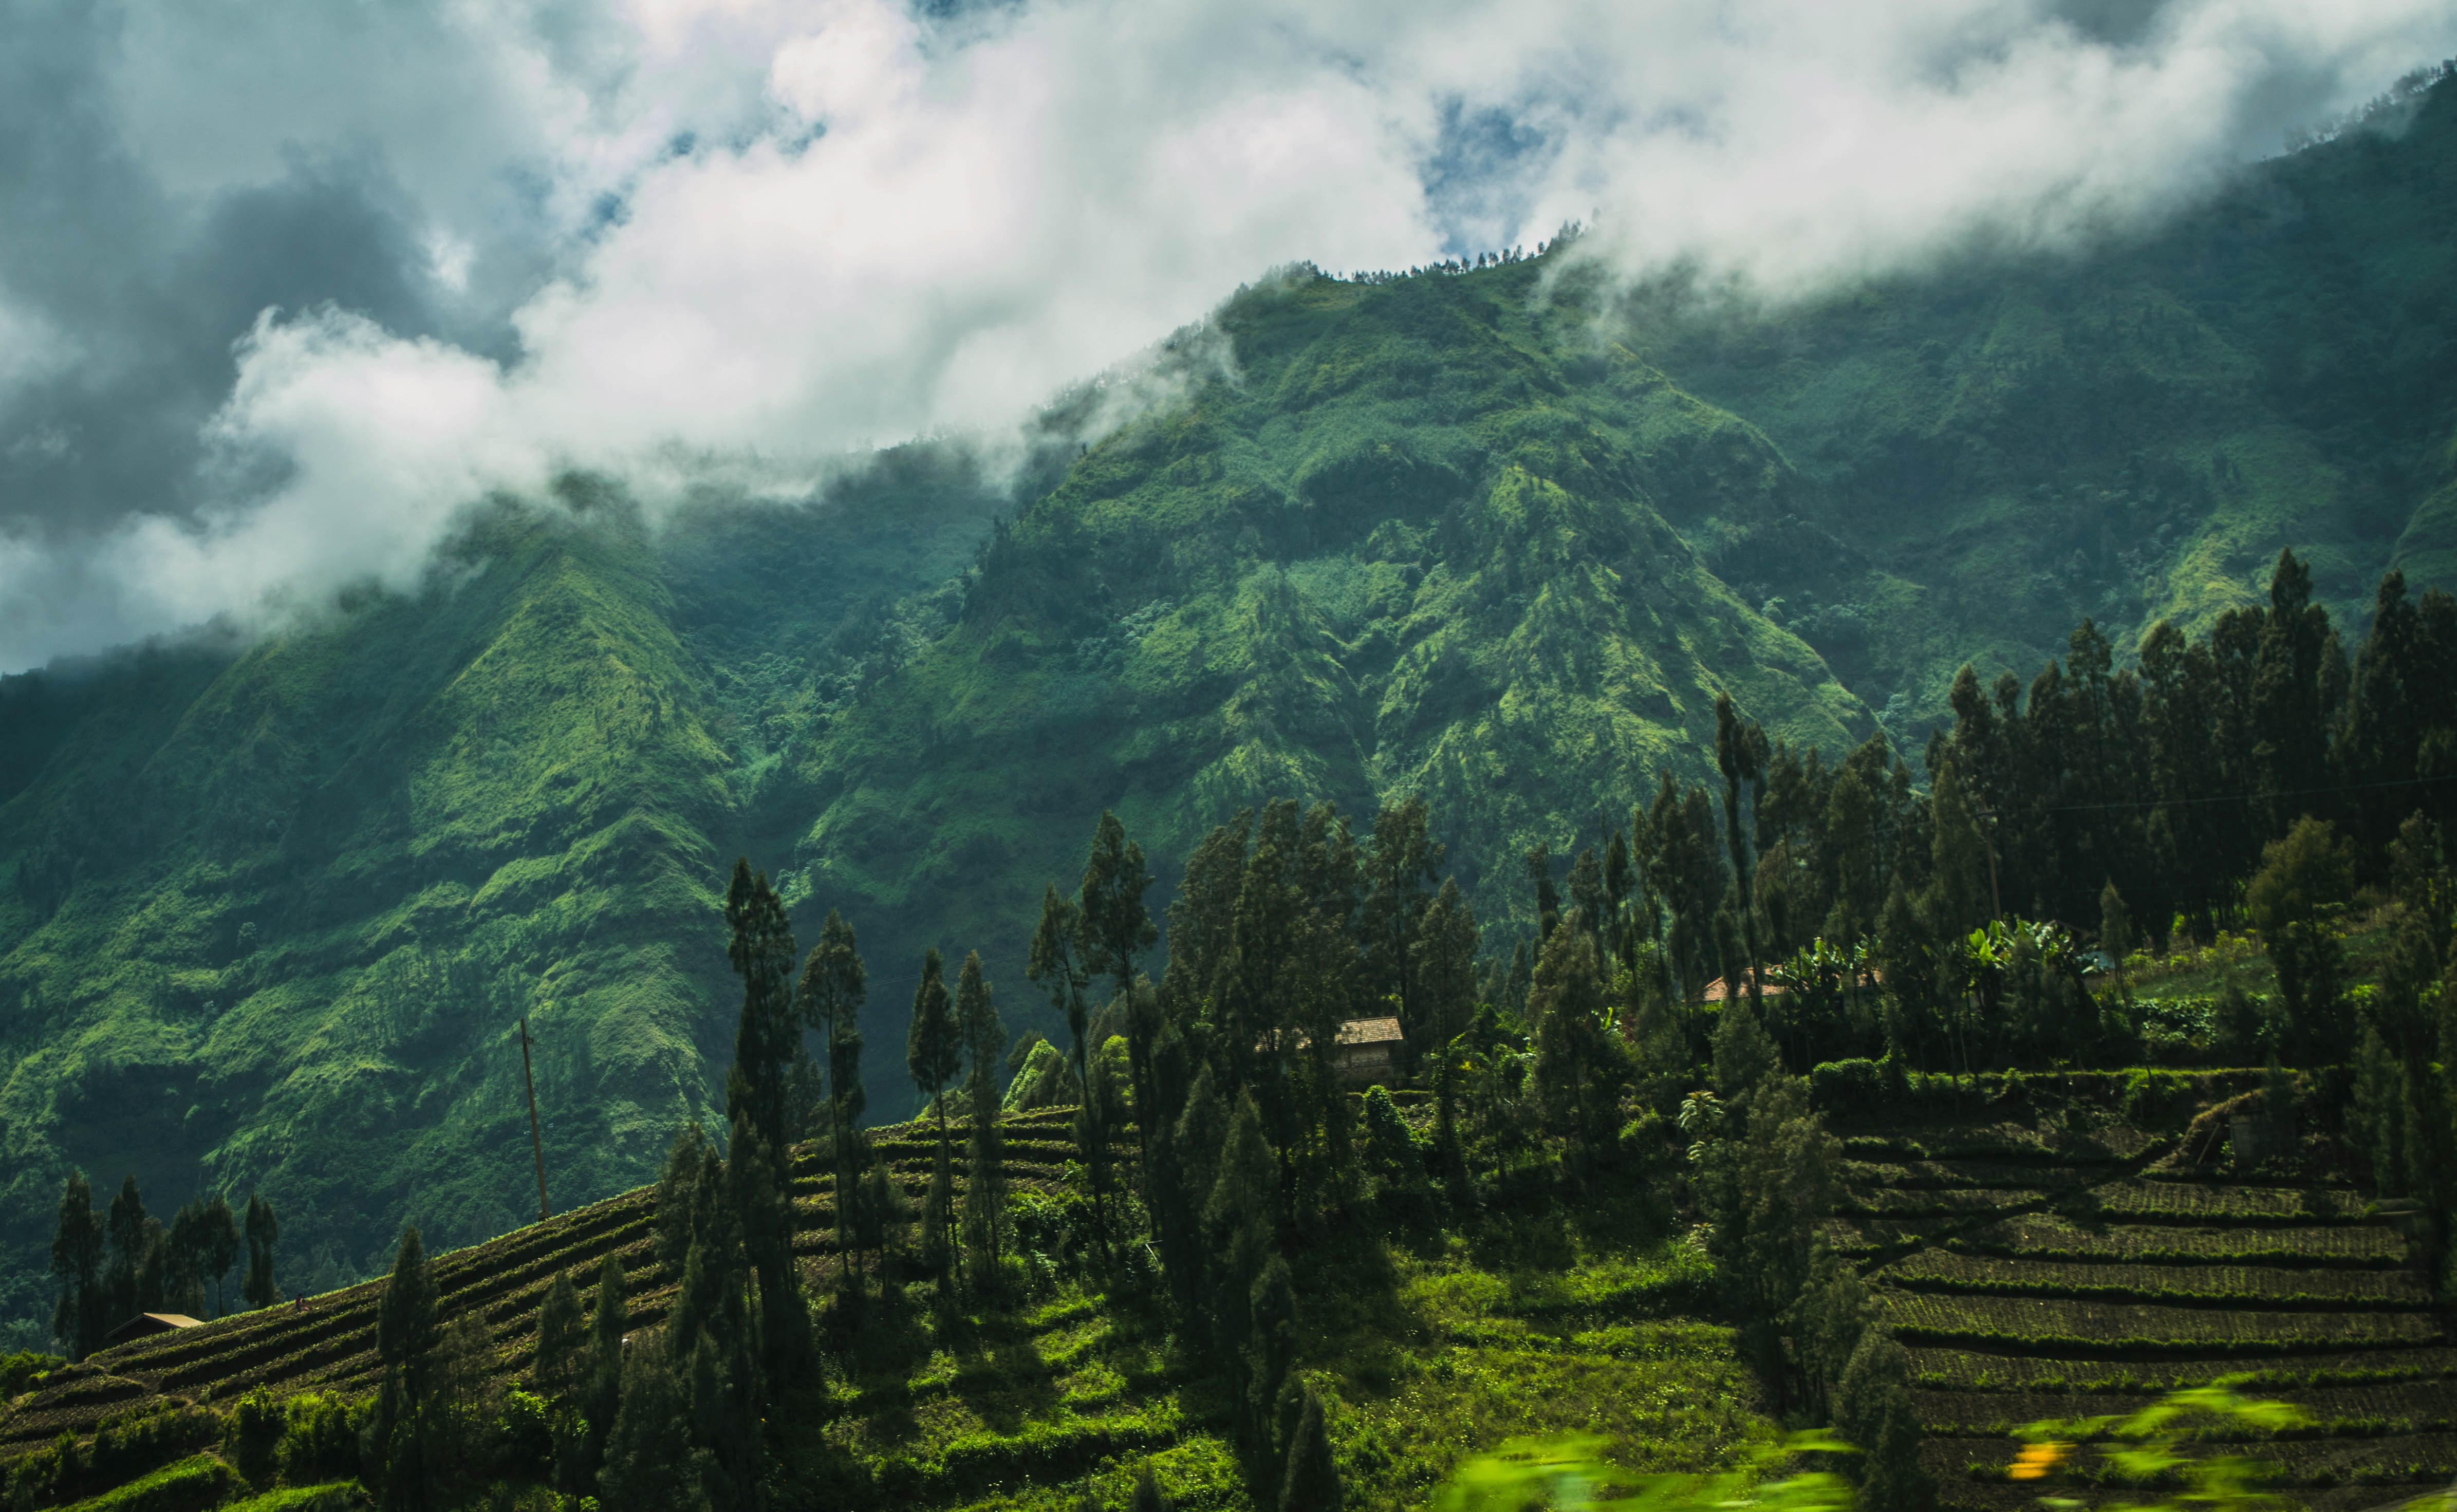 Cemoro Lawang, East Java, Indonesia